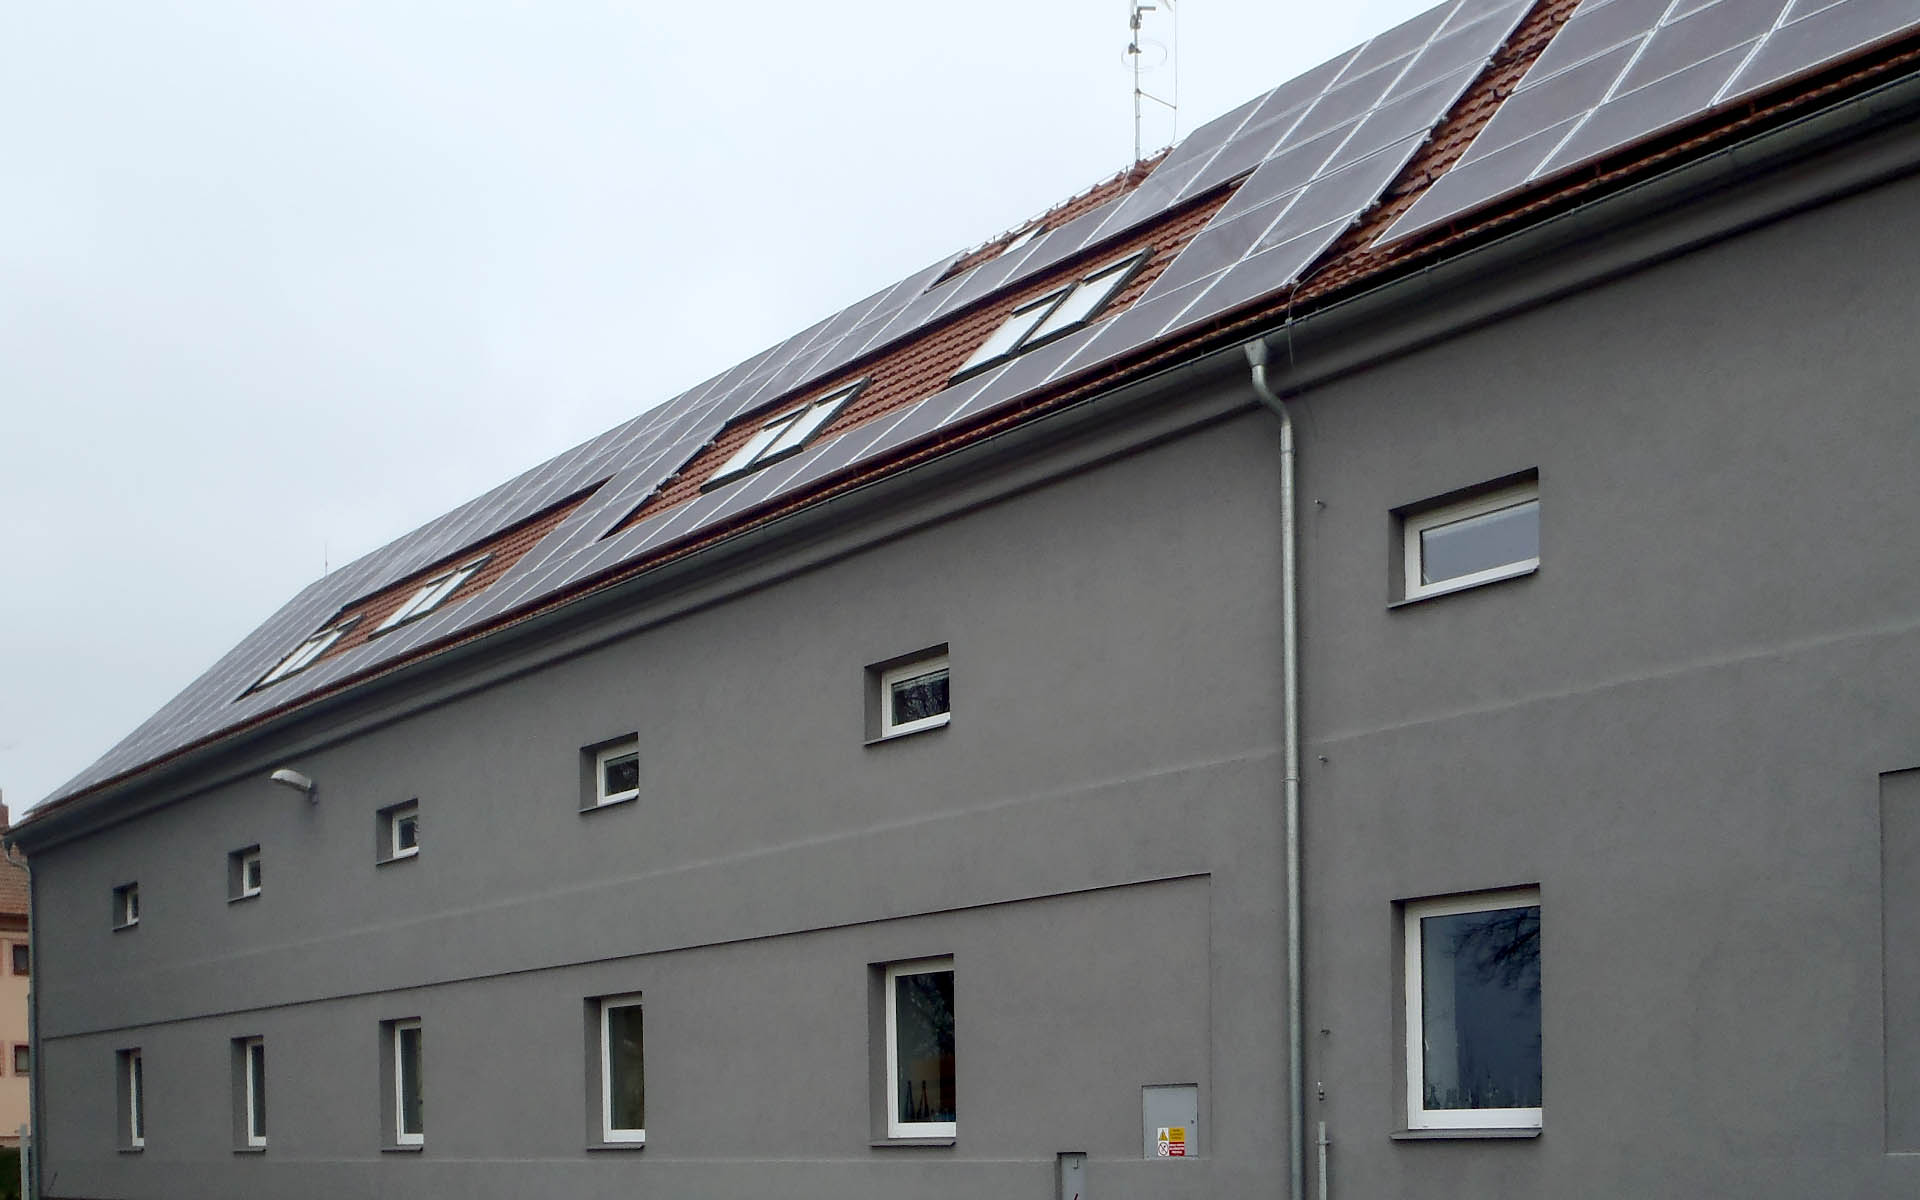 The reconstructed historical building advertising agency Q. Studio Brod. Installation of photovoltaic power plants with an output of 23 kWp.